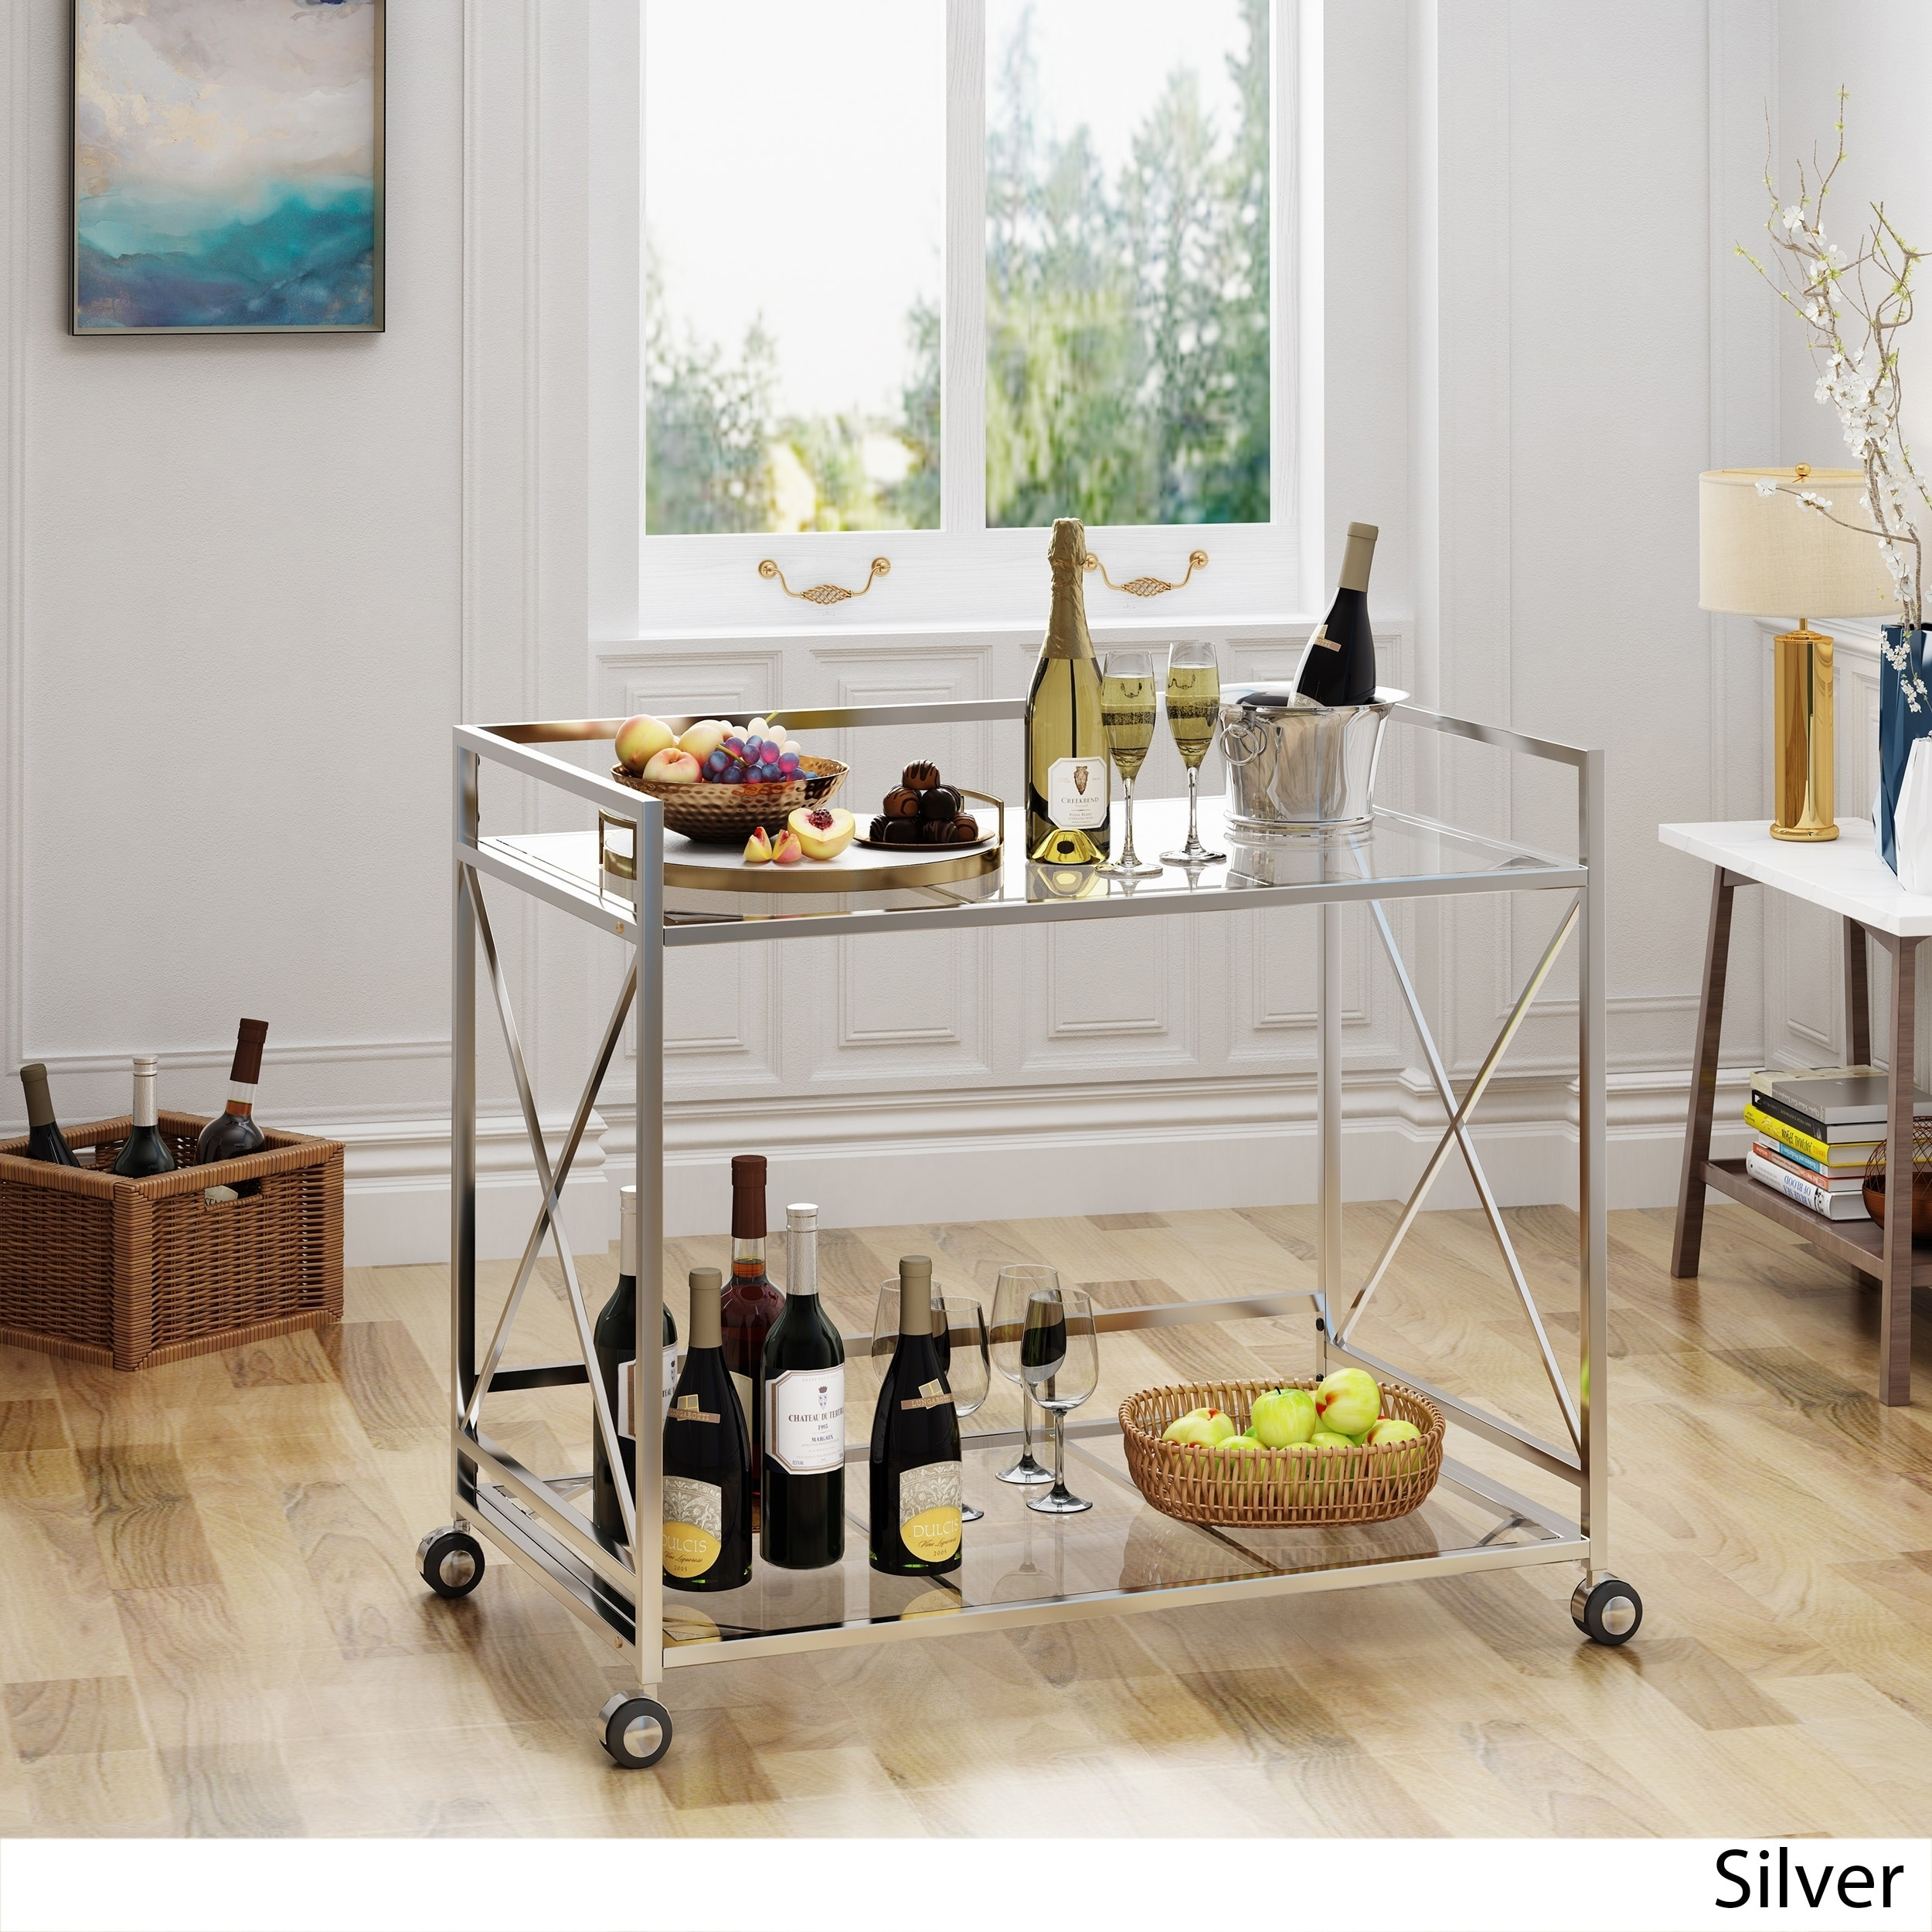 Ignatius Industrial Modern Glass Bar Cart By Christopher Knight Home Overstock 20905122